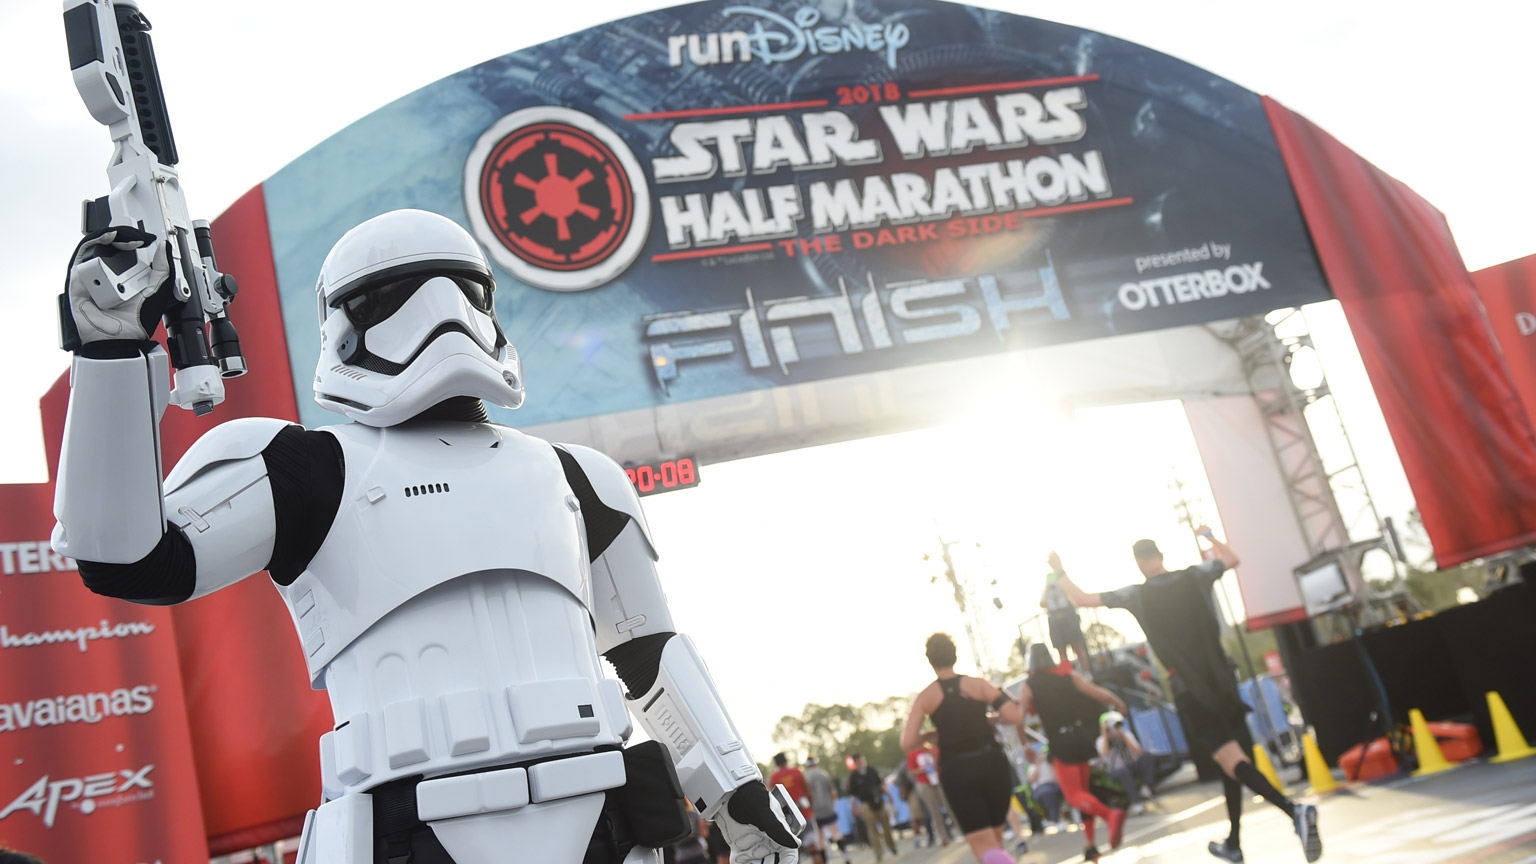 A stormtrooper stands at the finish line for the Star Wars Half Marathon in 2018.